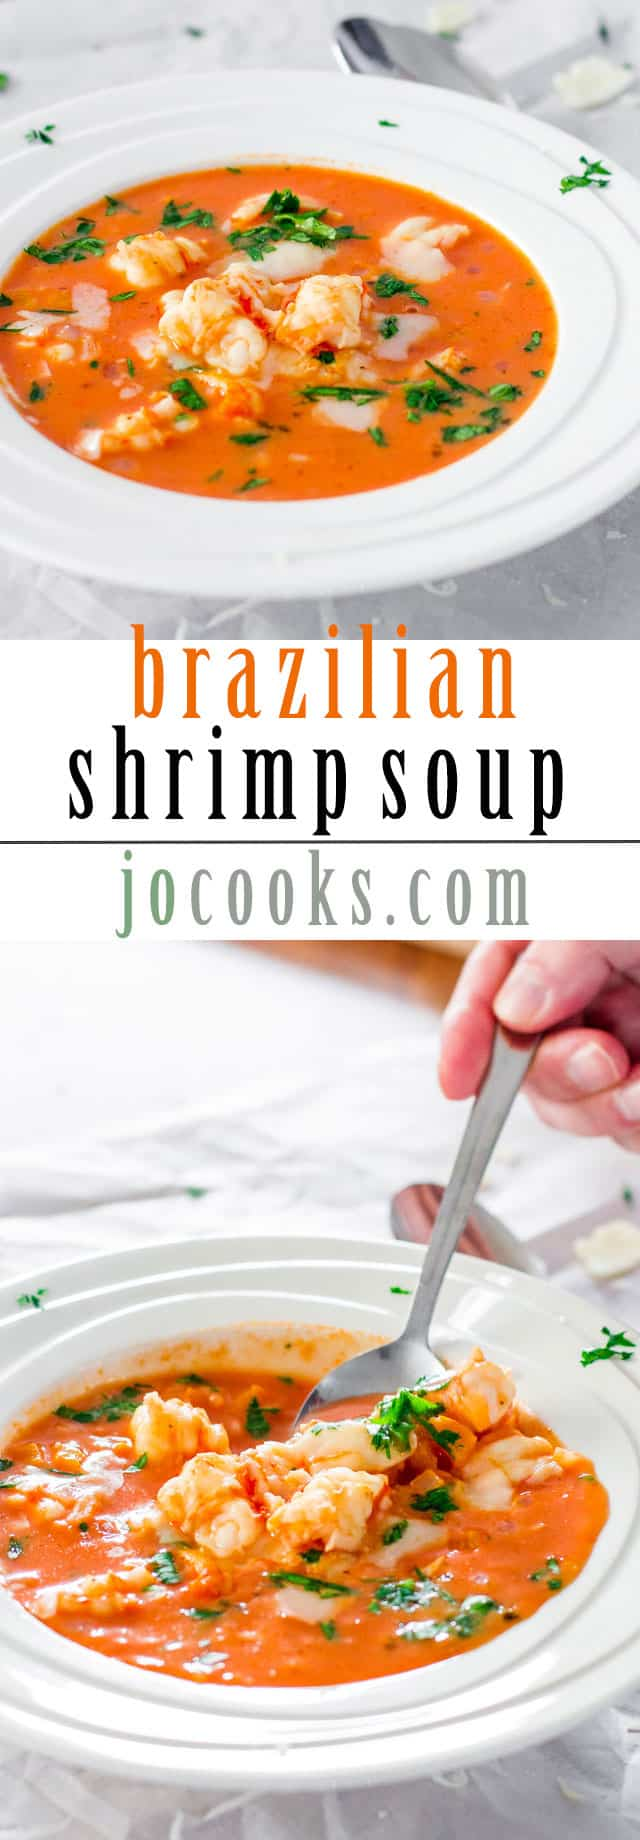 Brazilian Shrimp Soup - a delicious tomato creamy soup with shrimp, coconut milk and seasoned to perfection.